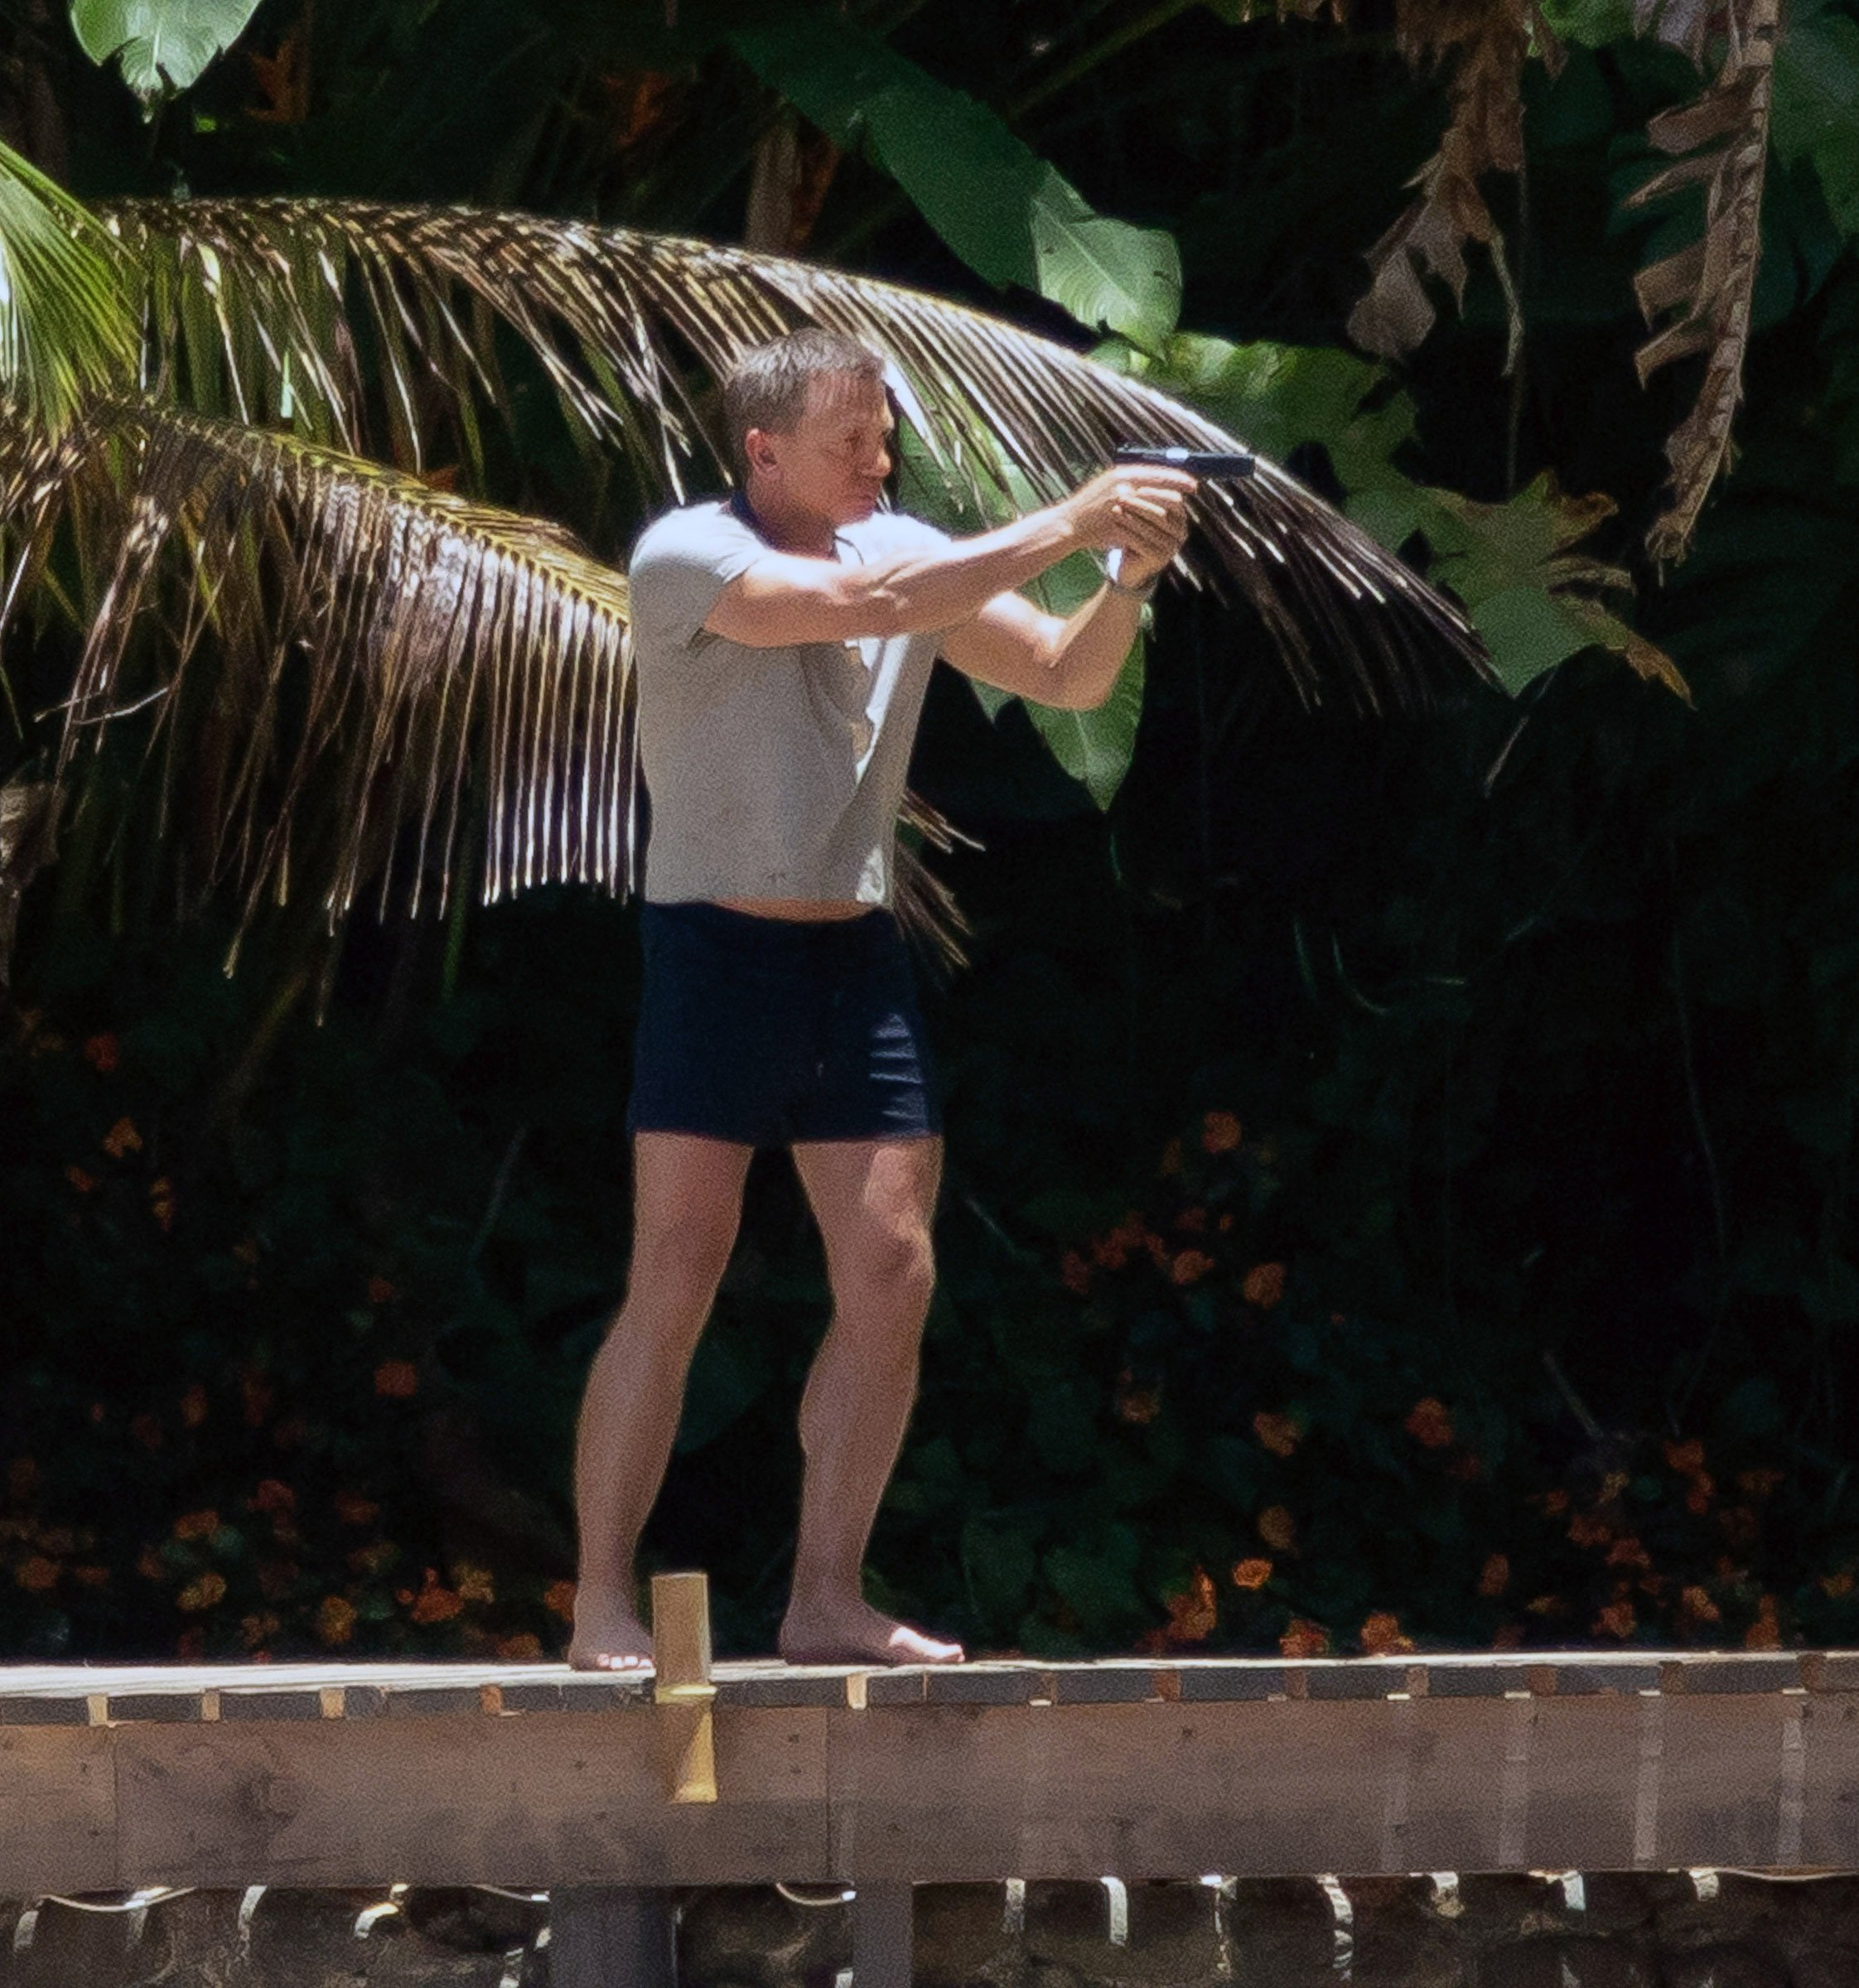 EXCLUSIVE: *Online Embargo Midnight Sunday 5th May 2019 BST / MIN ??500 set fee online / print (double front page)* Daniel Craig films the latest scenes on the set of the new James Bond movie in Jamaica. He was spotted on a boardwalk at a specially built beachfront house set in lush tropical surroundings. In one scene, Daniel Craig goes fishing with a spear gun as Bond appears to have caught his own dinner during a boat trip. Craig was seen wielding a large spear gun and then carrying two large fish from his sailing boat along the dock. Daniel Craig can also be seen smoking a cigar during a break in filming on the set for the new James Bond movie in Jamaica. After the scenes he took a stroll on his own along the beach as two police patrol boats made sure he was safe, staying by the set all day. Pictured: Daniel Craig Ref: SPL5084881 010519 EXCLUSIVE Picture by: SplashNews.com *Online Embargo Midnight Sunday 5th May 2019 BST / MIN ??500 set fee online / print (double front page)* Splash News and Pictures Los Angeles: 310-821-2666 New York: 212-619-2666 London: 0207 644 7656 Milan: 02 4399 8577 photodesk@splashnews.com World Rights